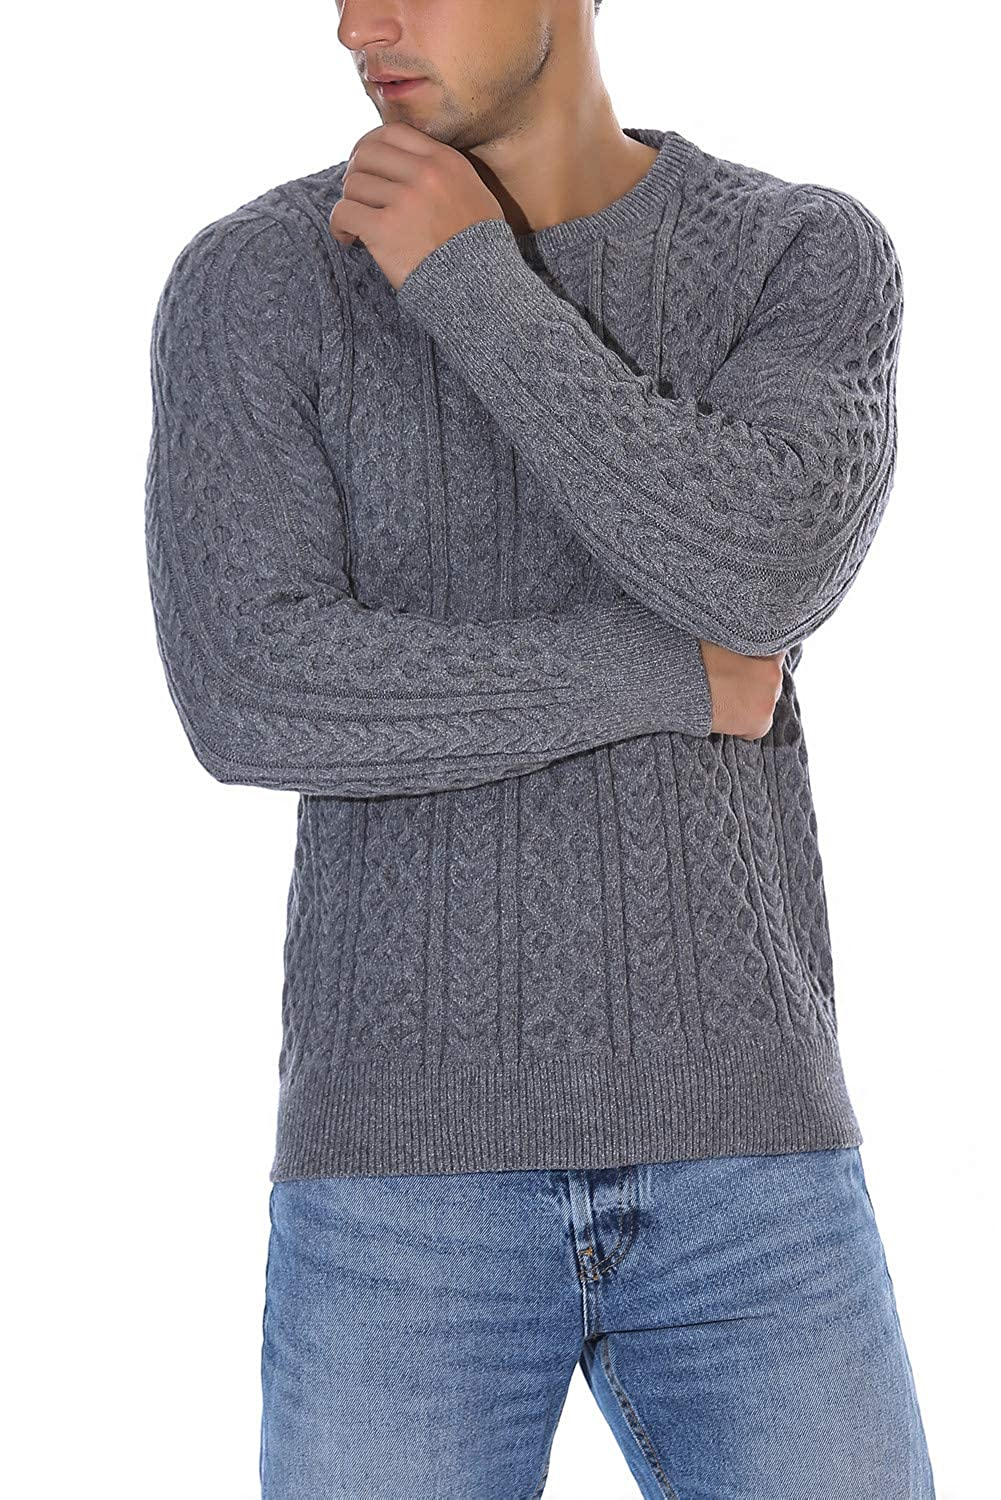 Rocorose Men's Cable Knit Long Sleeves Crewneck Sweater RR8031